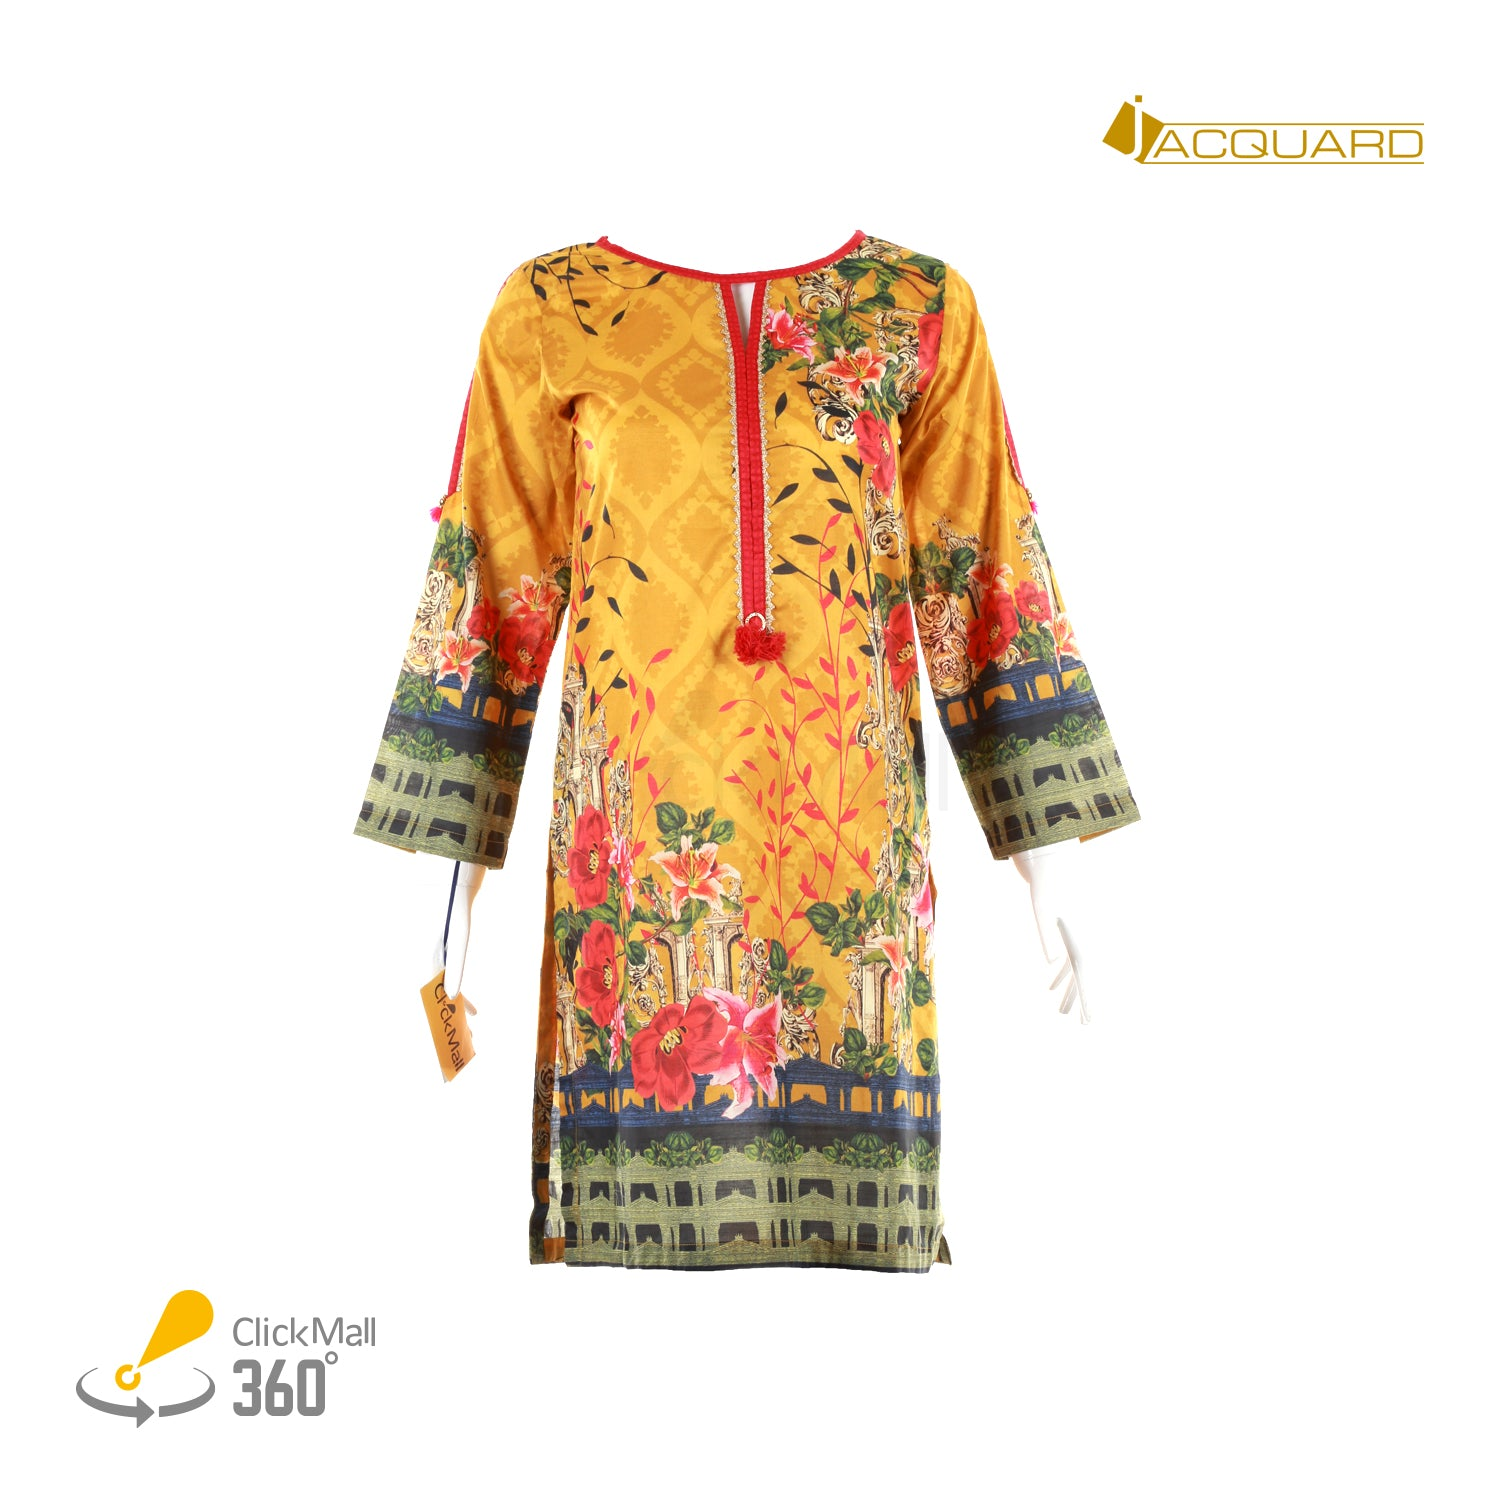 Jacquard Digital Lawn Shirt - JSSD-436